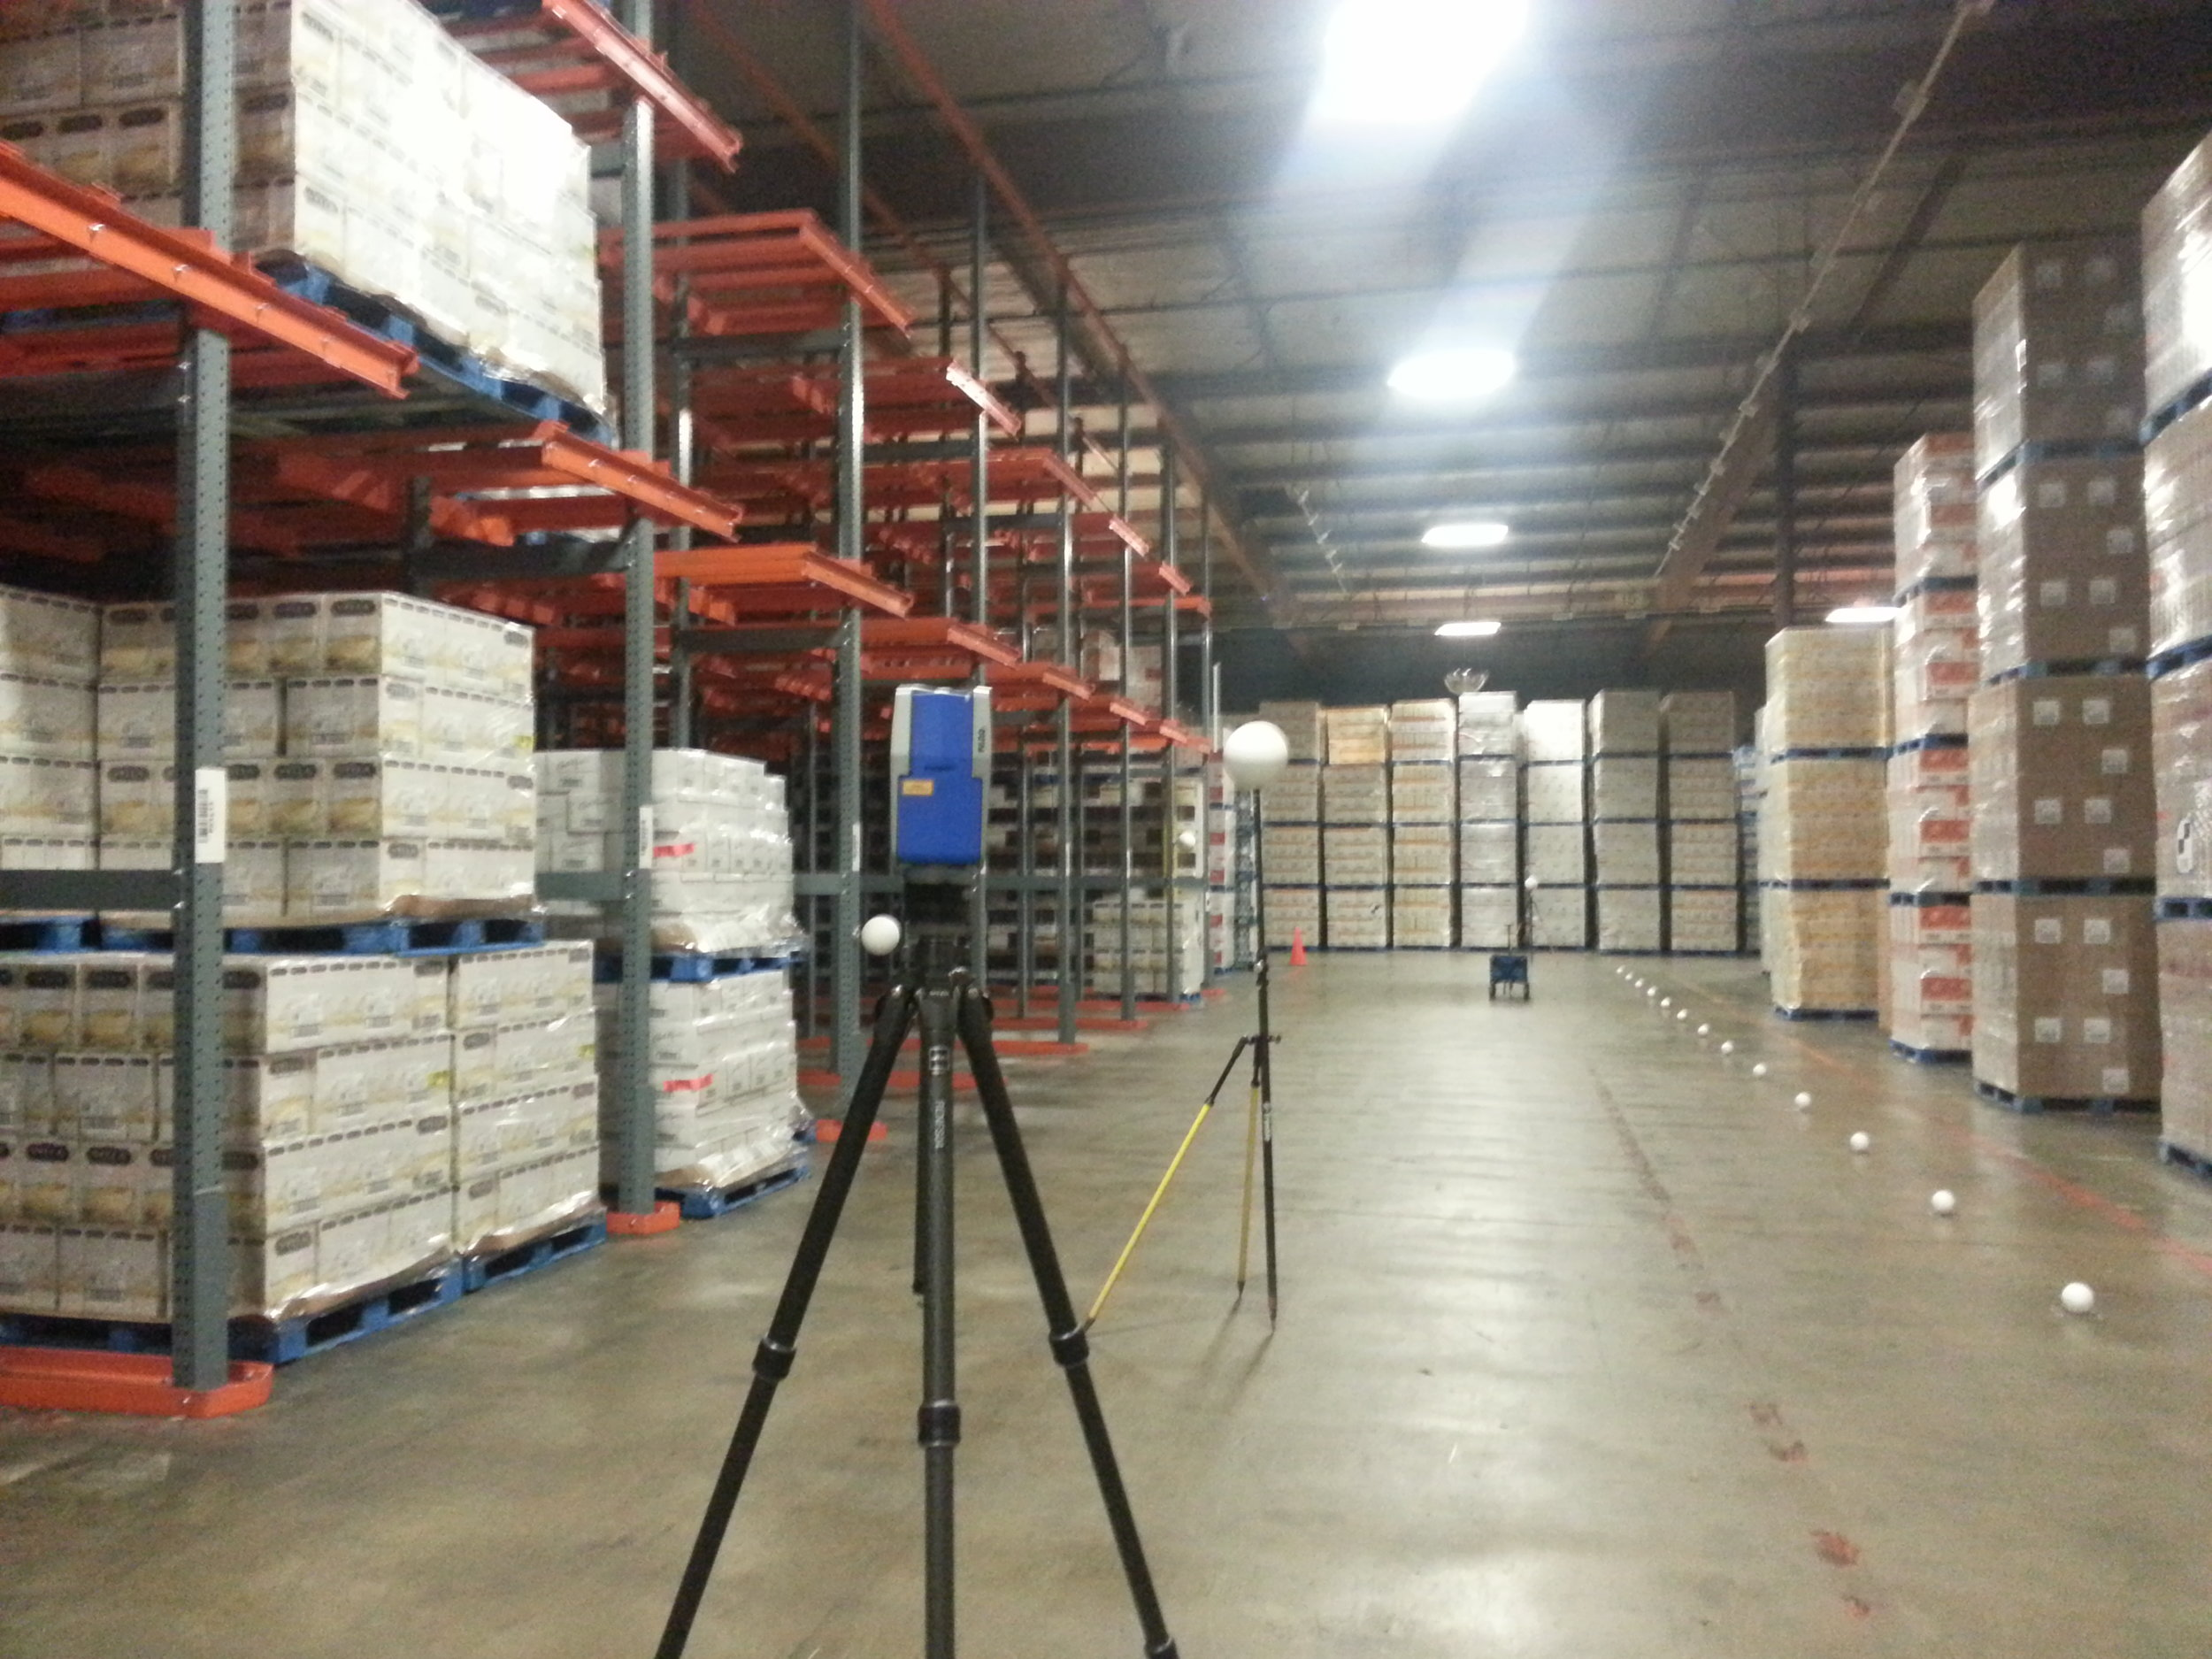 3D Scan for Automated Guided Vehicle Control